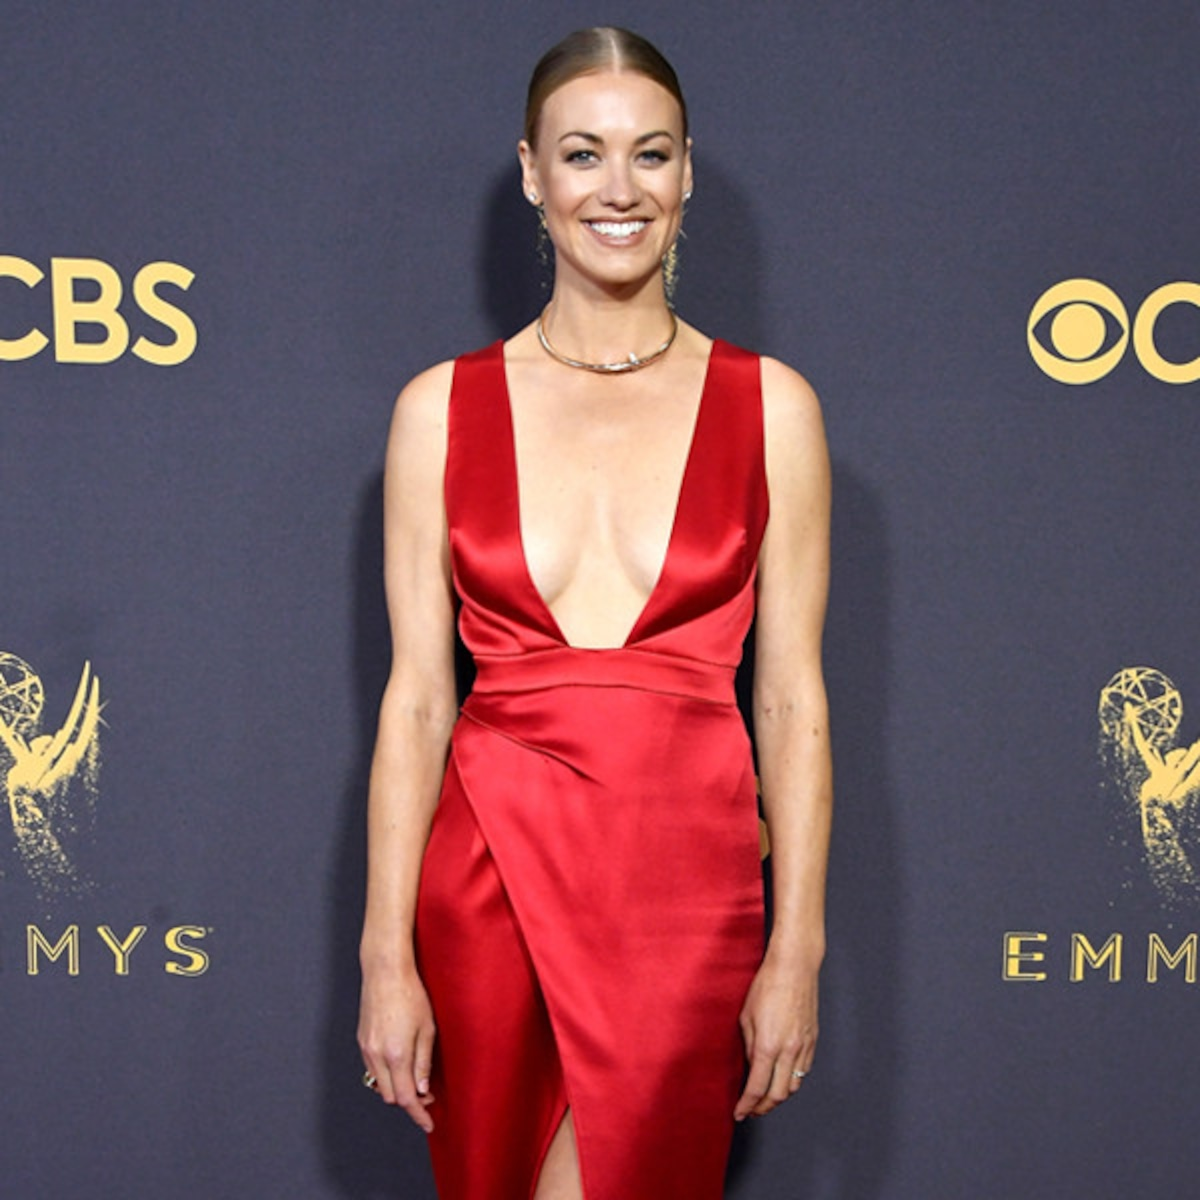 Yvonne Strahovski Is Married Star Introduces Her Husband At Emmys E Online We ended up jumping in the lake in our suit and gown, it was ridiculously hot. yvonne strahovski is married star